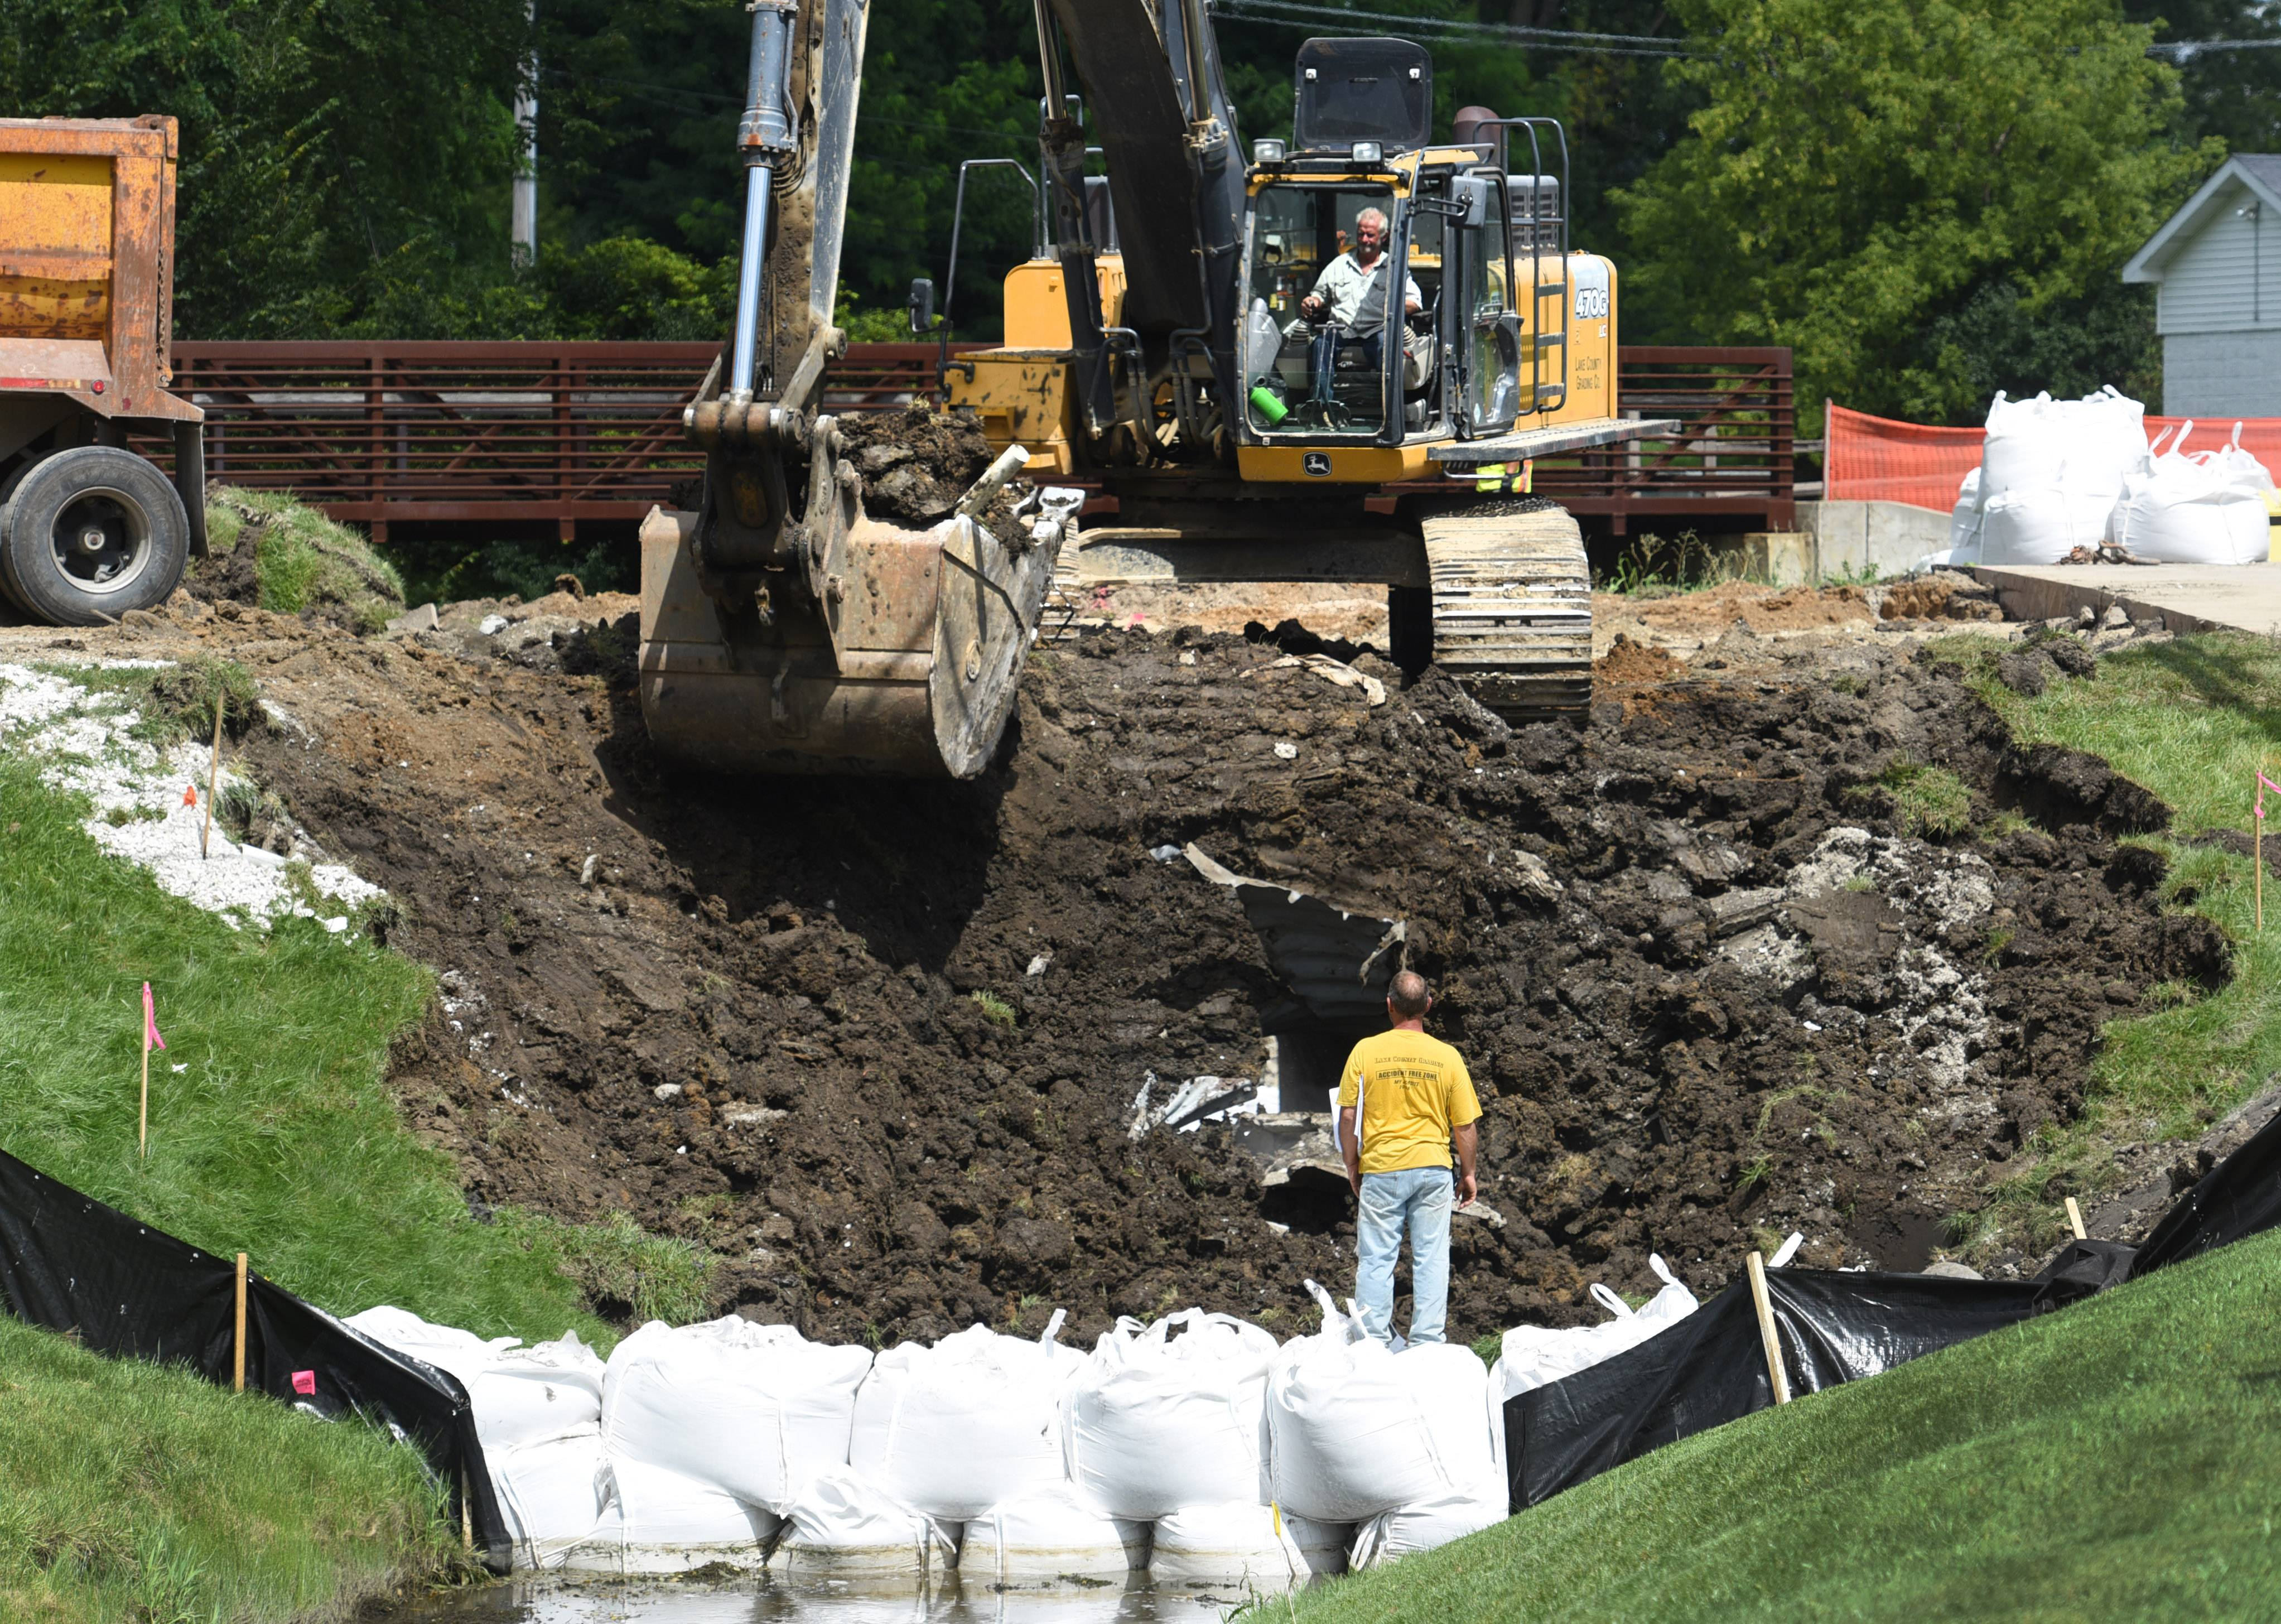 Crews have begun work to replace a large culvert under Center Street in Grayslake that collapsed as a result of flash flooding last month. The street is scheduled to reopen Sept. 1.